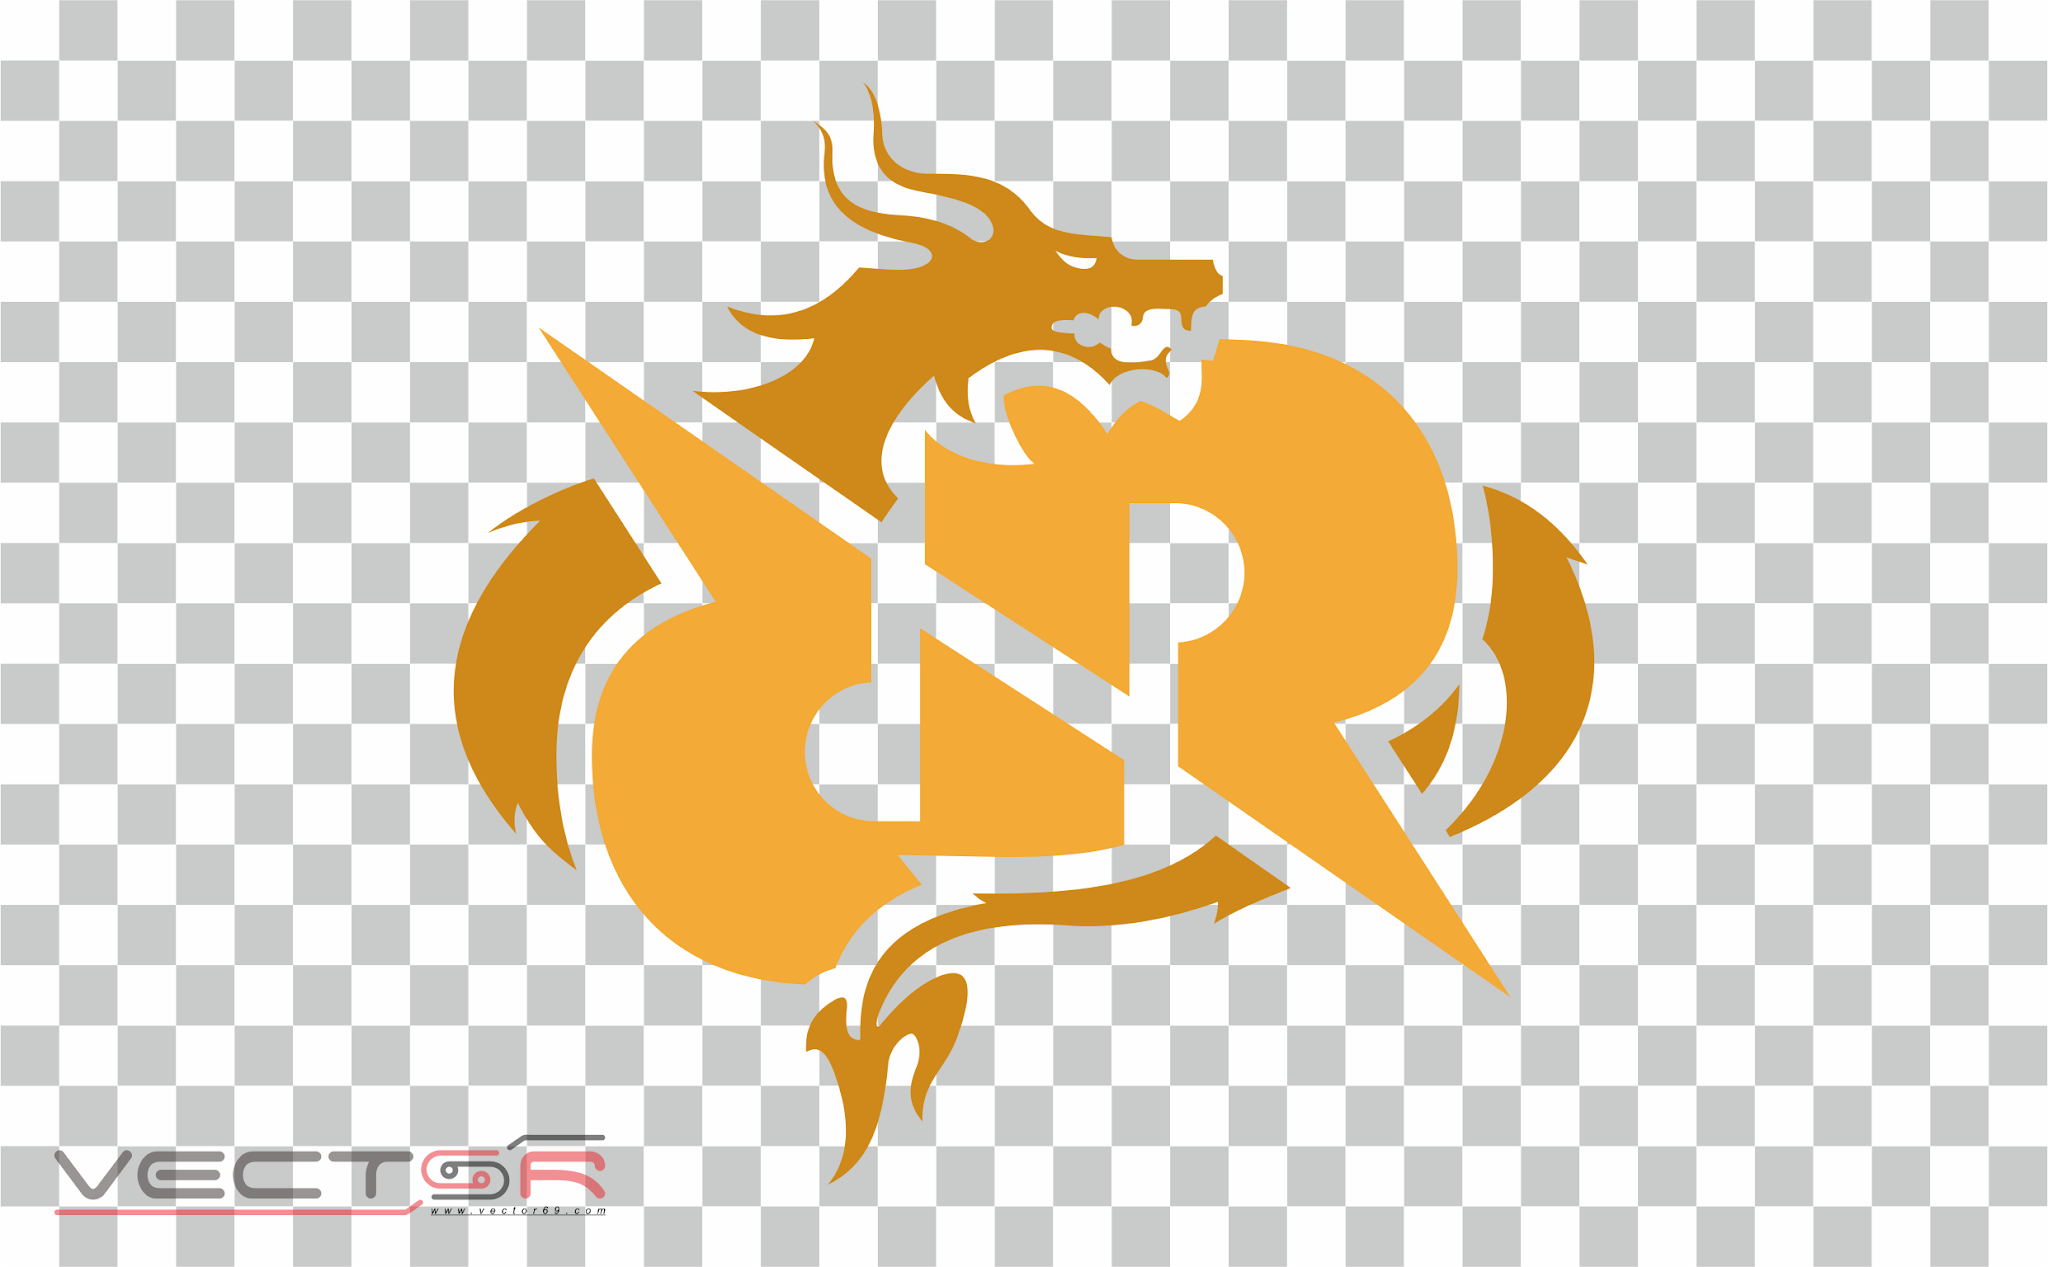 RRQ Ryu Logo - Download Vector File PNG (Portable Network Graphics)